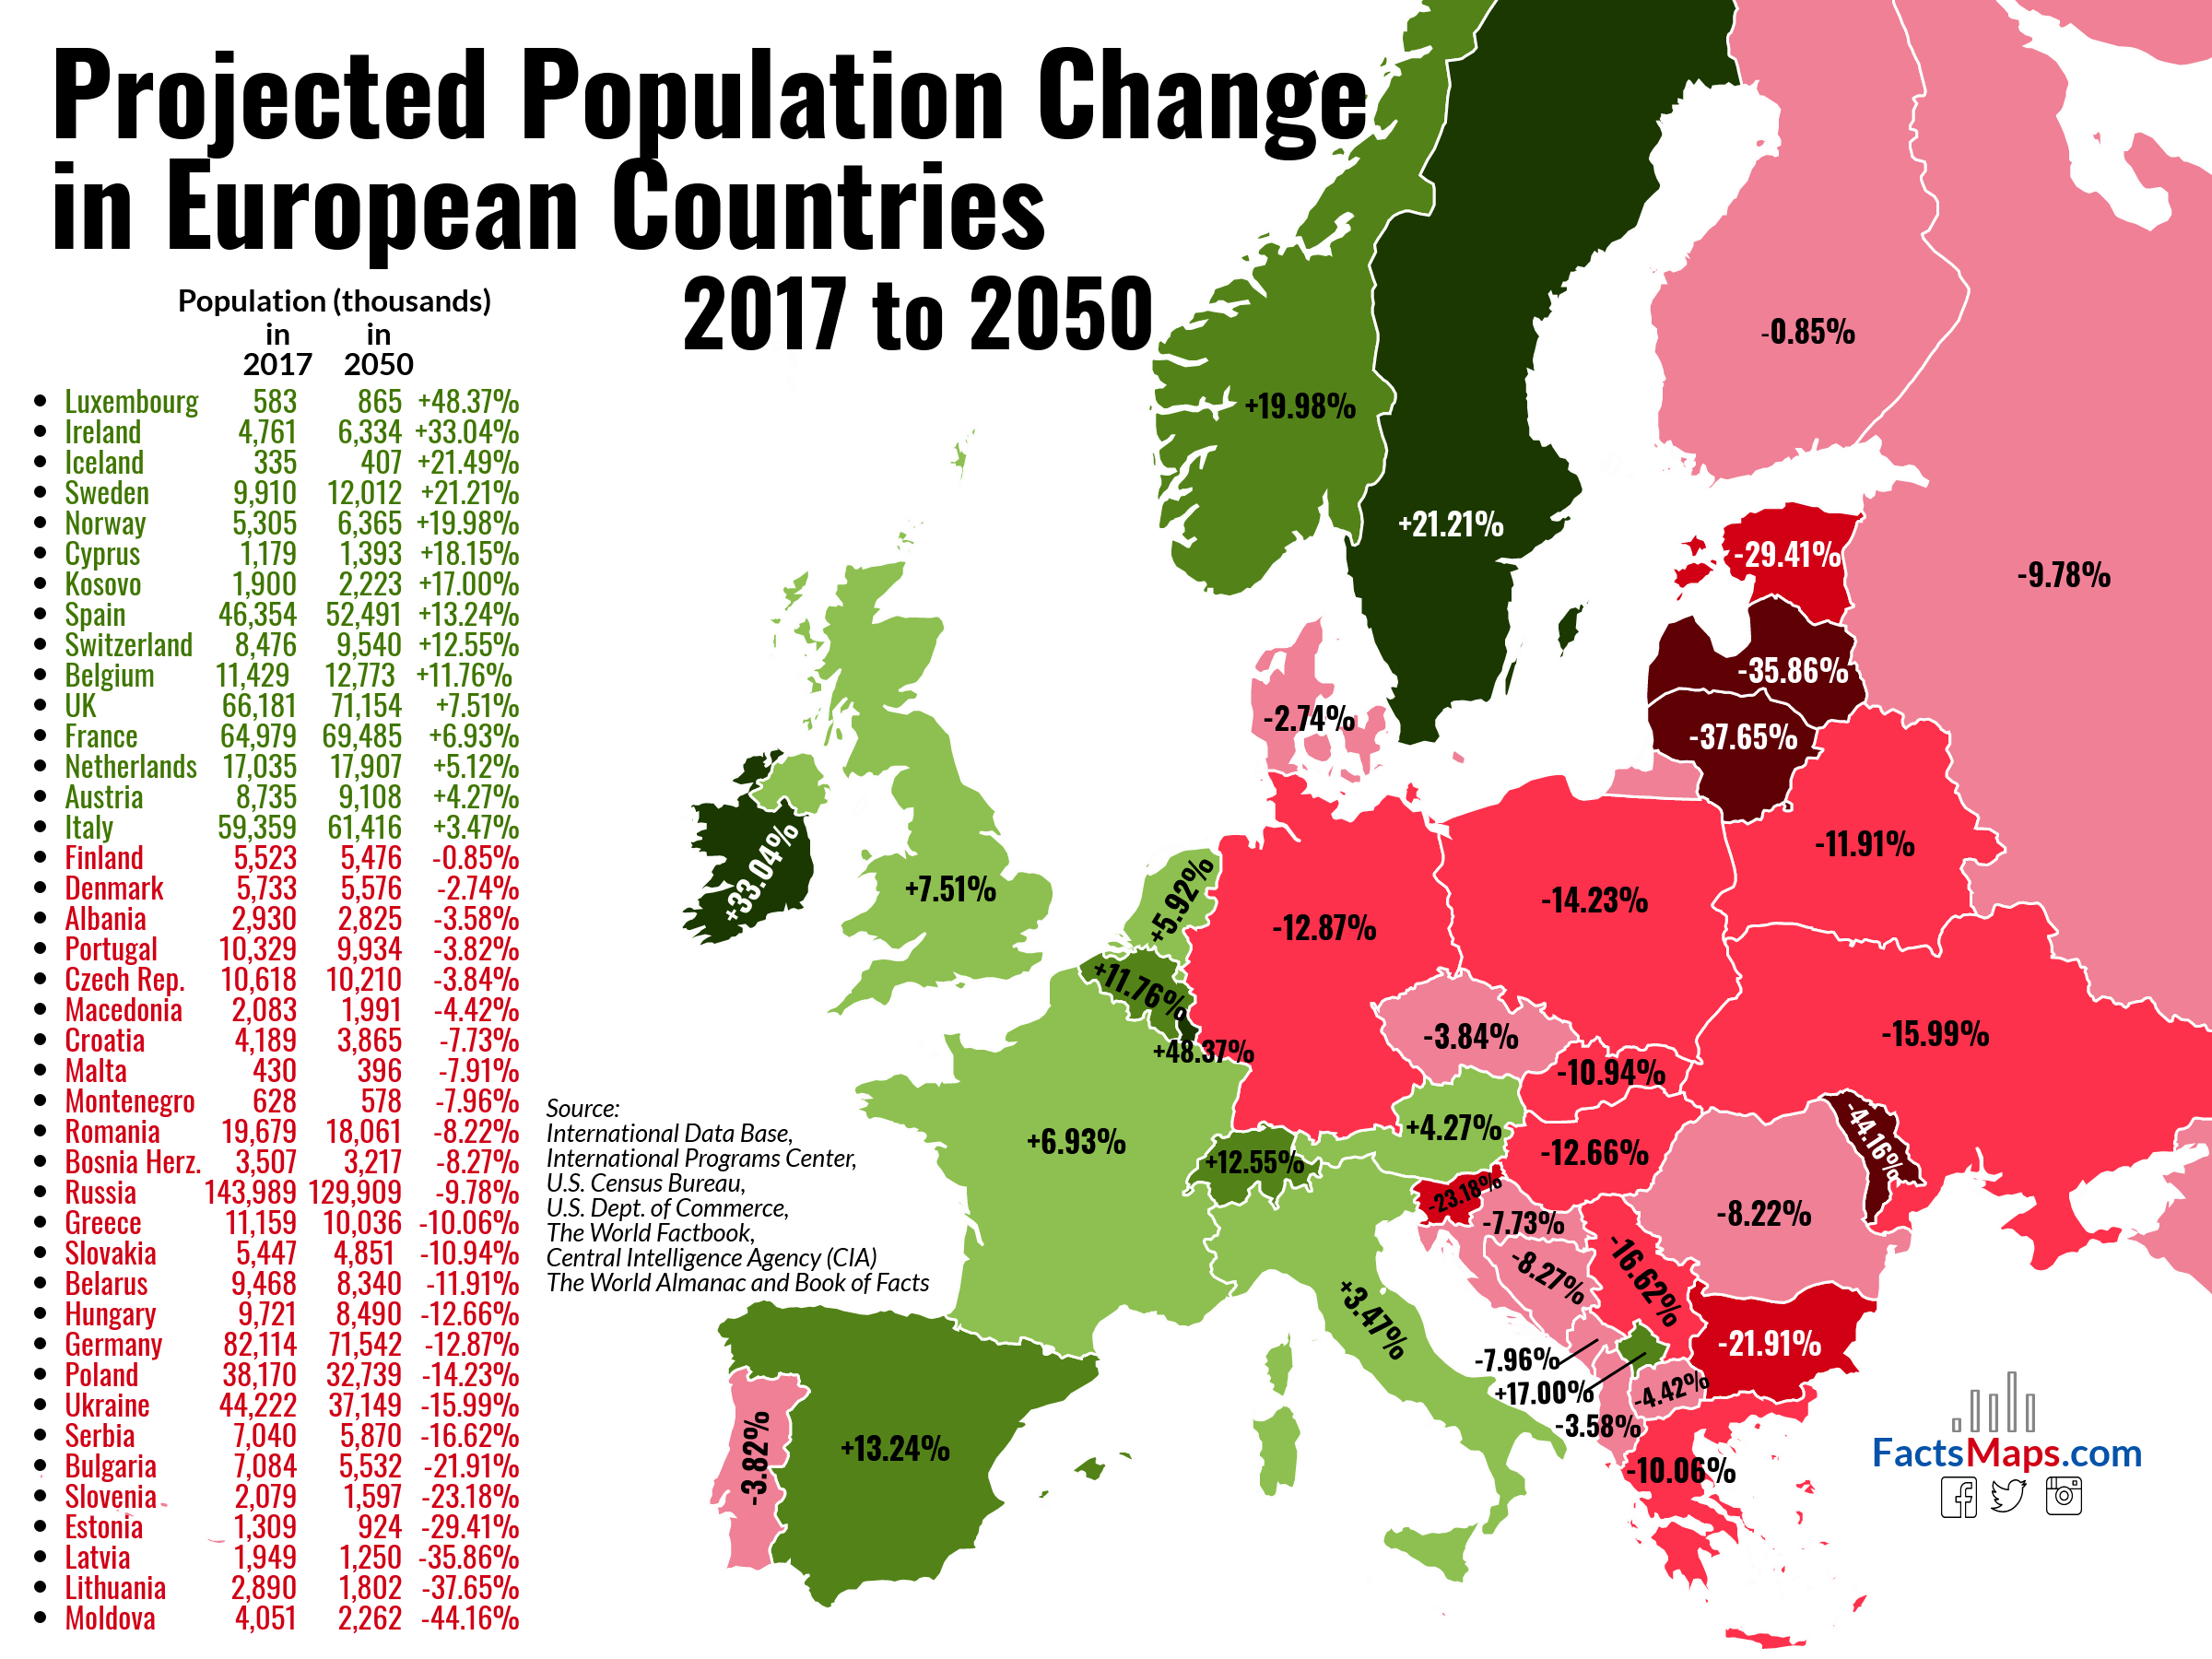 Projected Population Change In European Countries 2017 To 2050